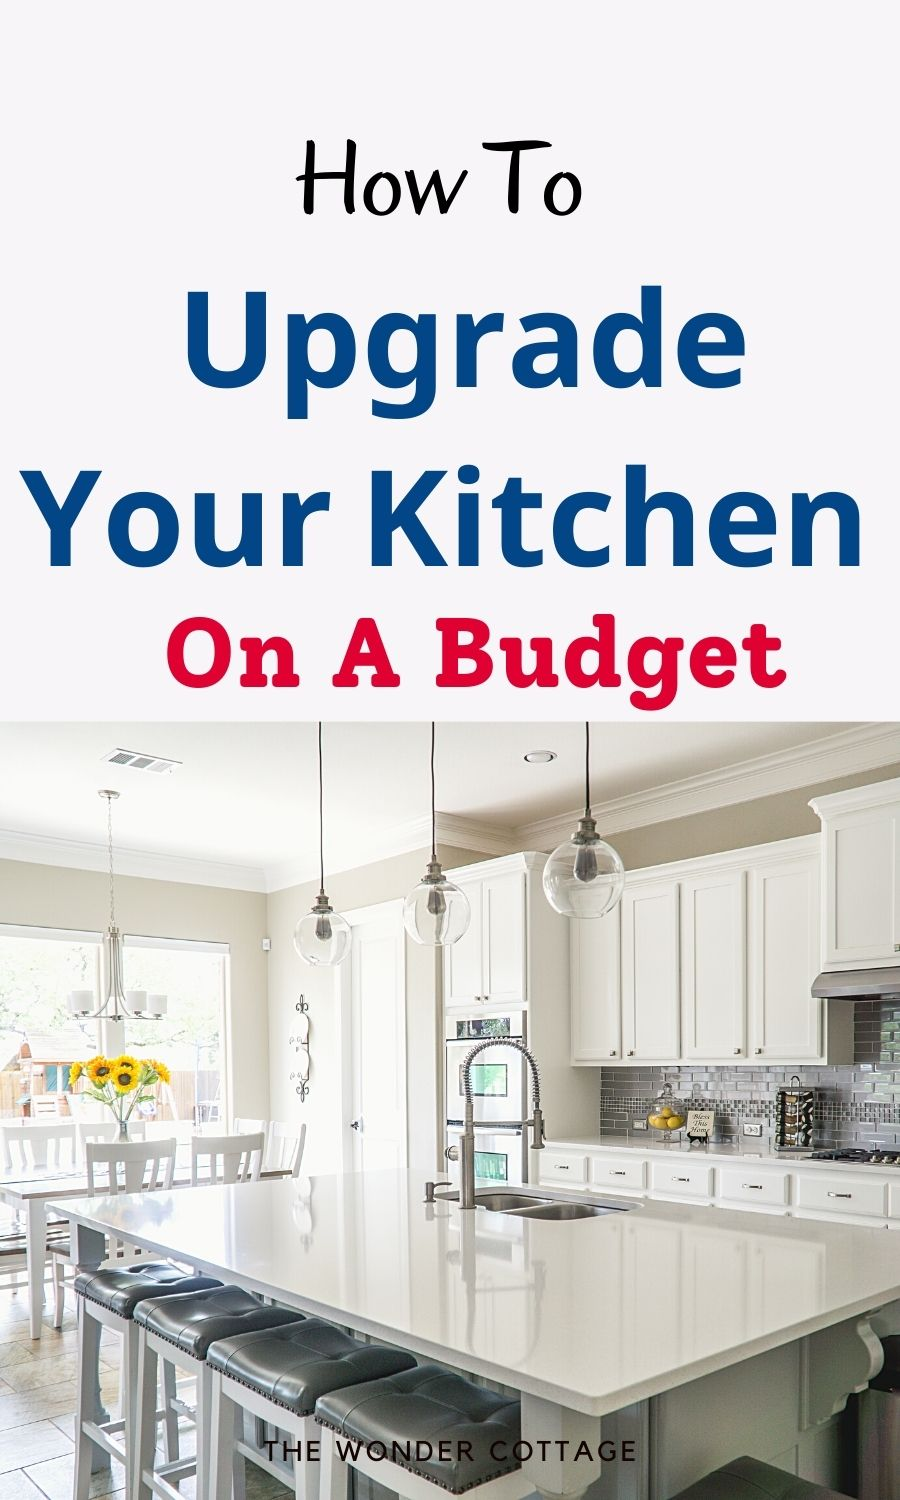 How to upgrade your kitchen on abudget